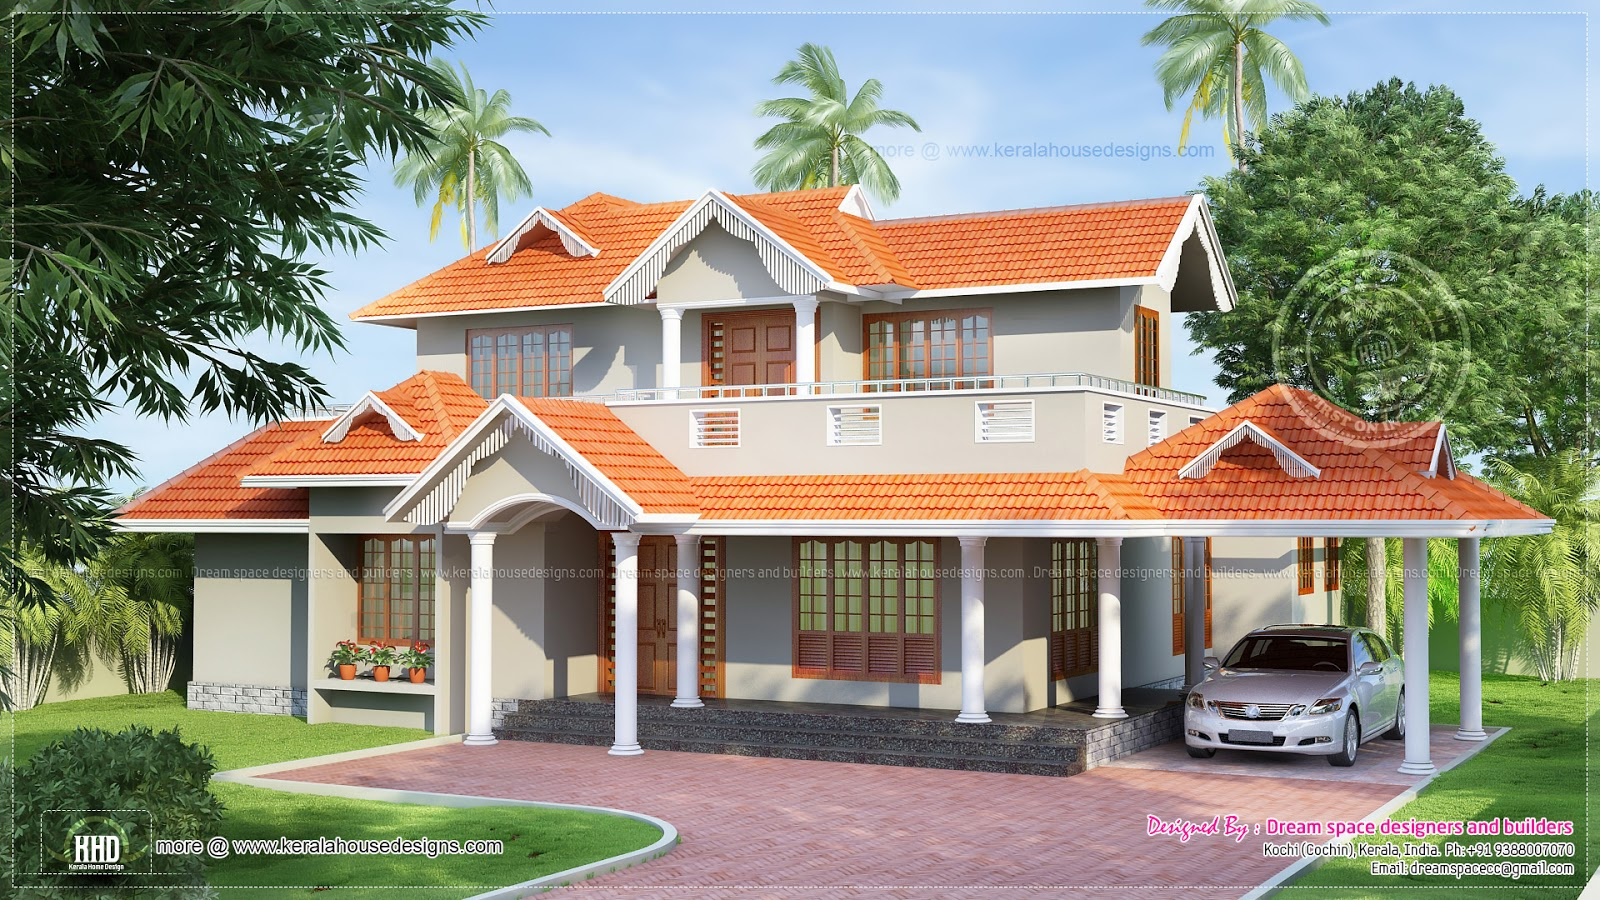 Slopping Style Tiles Roof House In 2300 Sqfeet Kerala